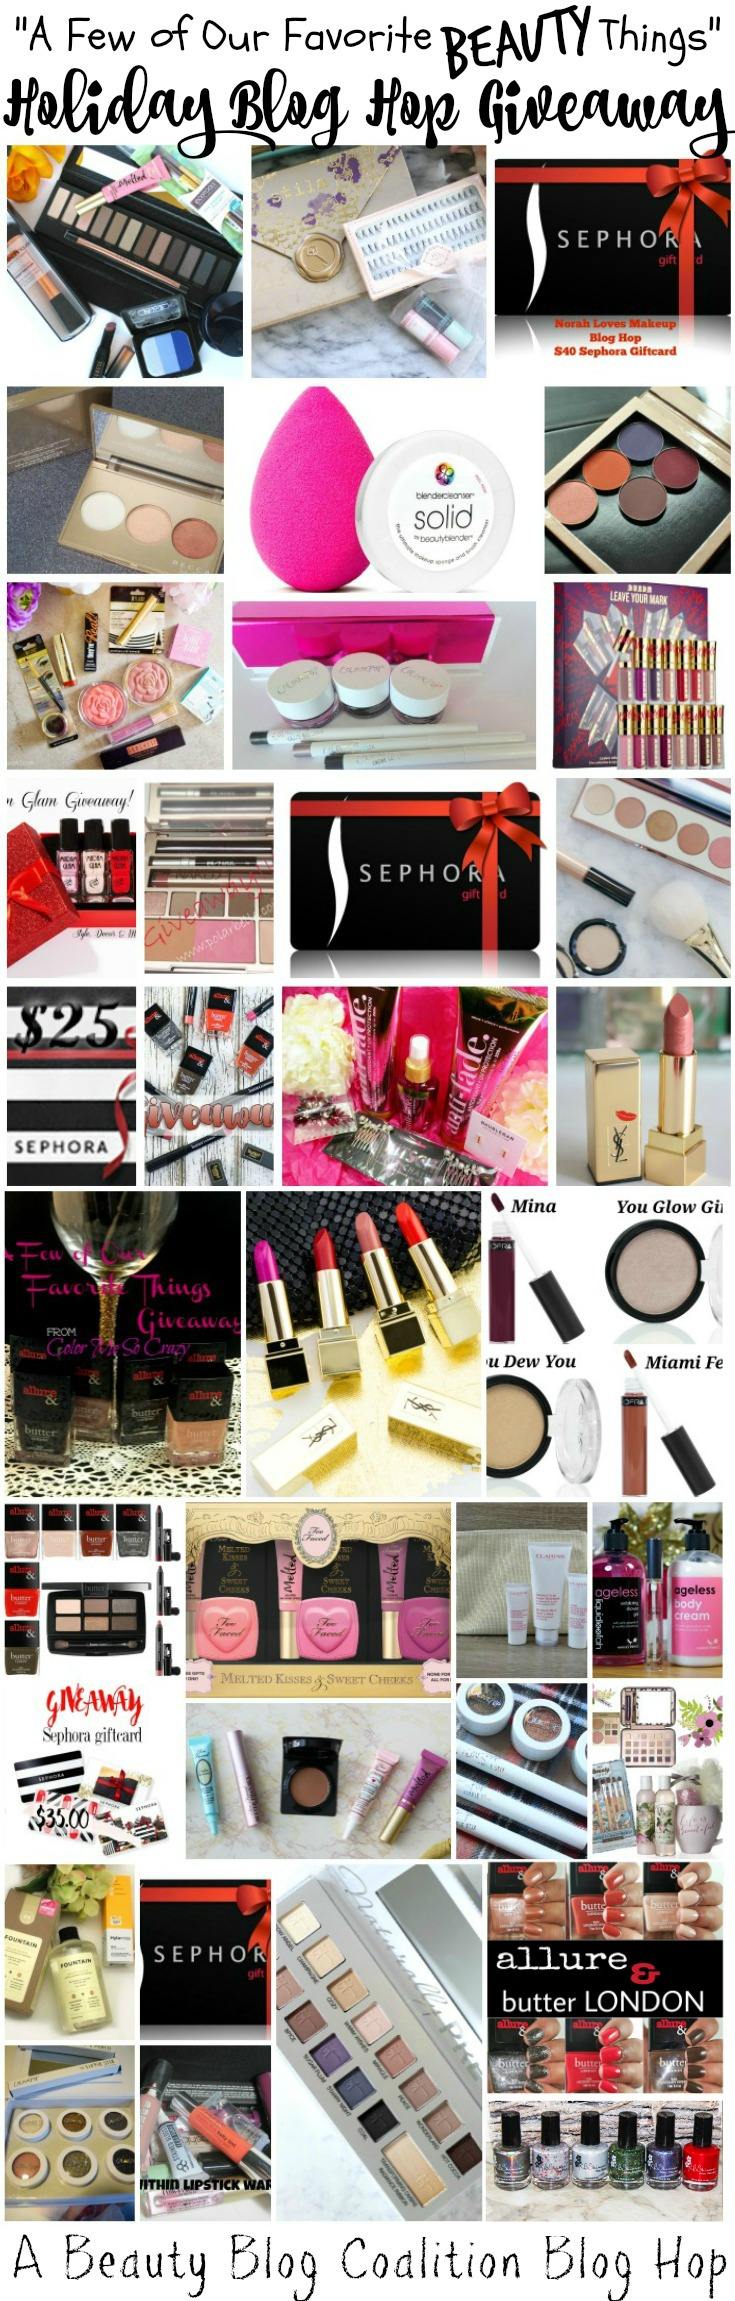 Enter to win a huge beauty giveaway with tons of your favorite beauty products!